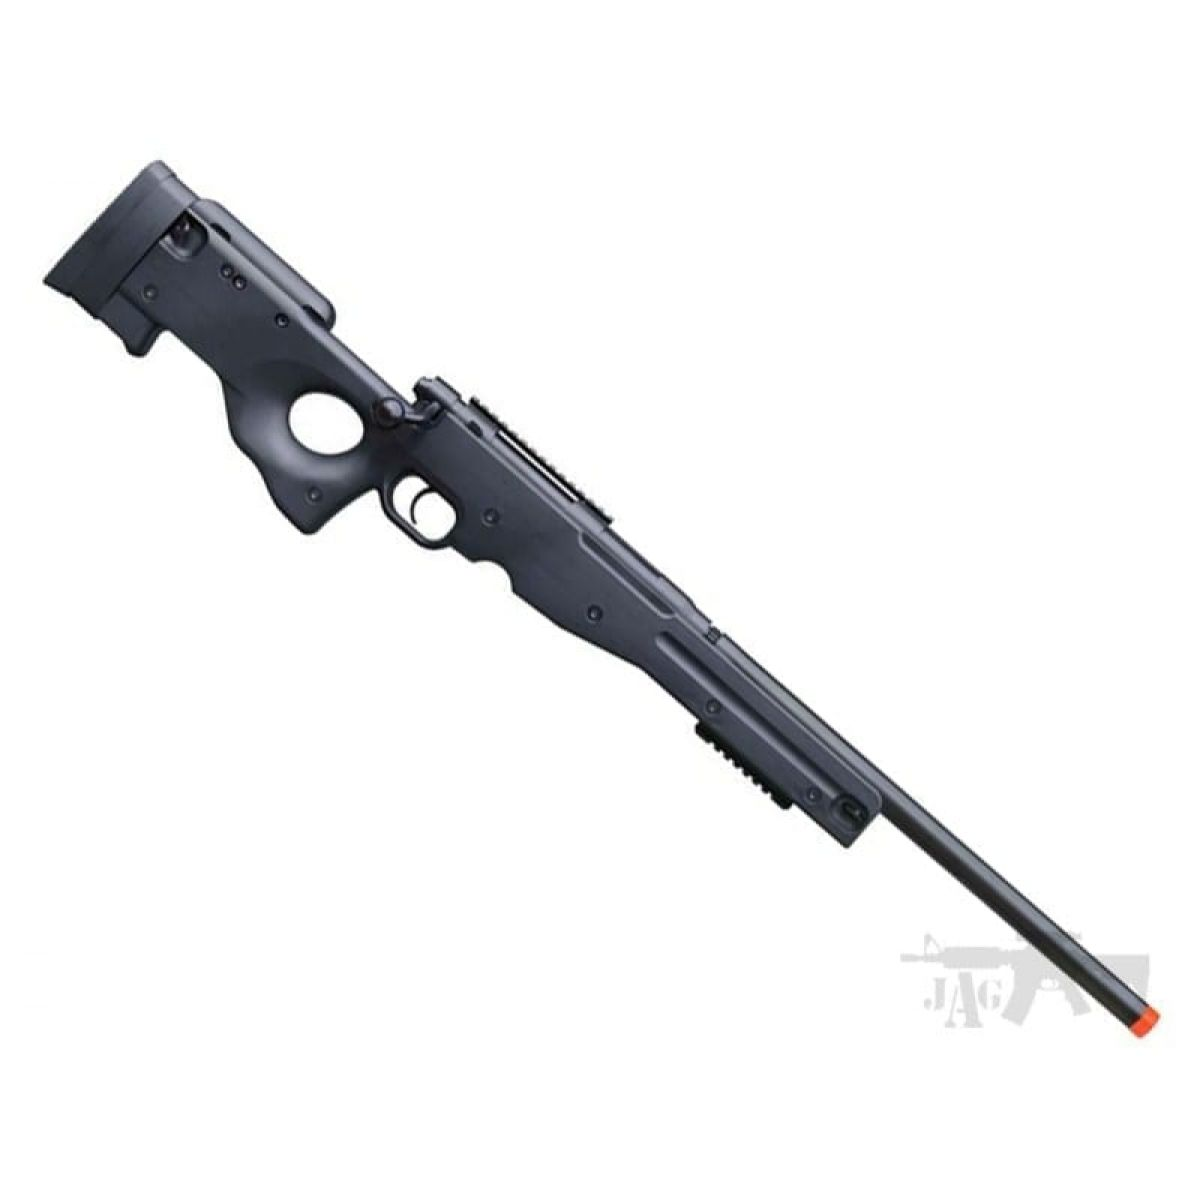 UA317 UHC TYPE 96 AIRSOFT SNIPER RIFLE